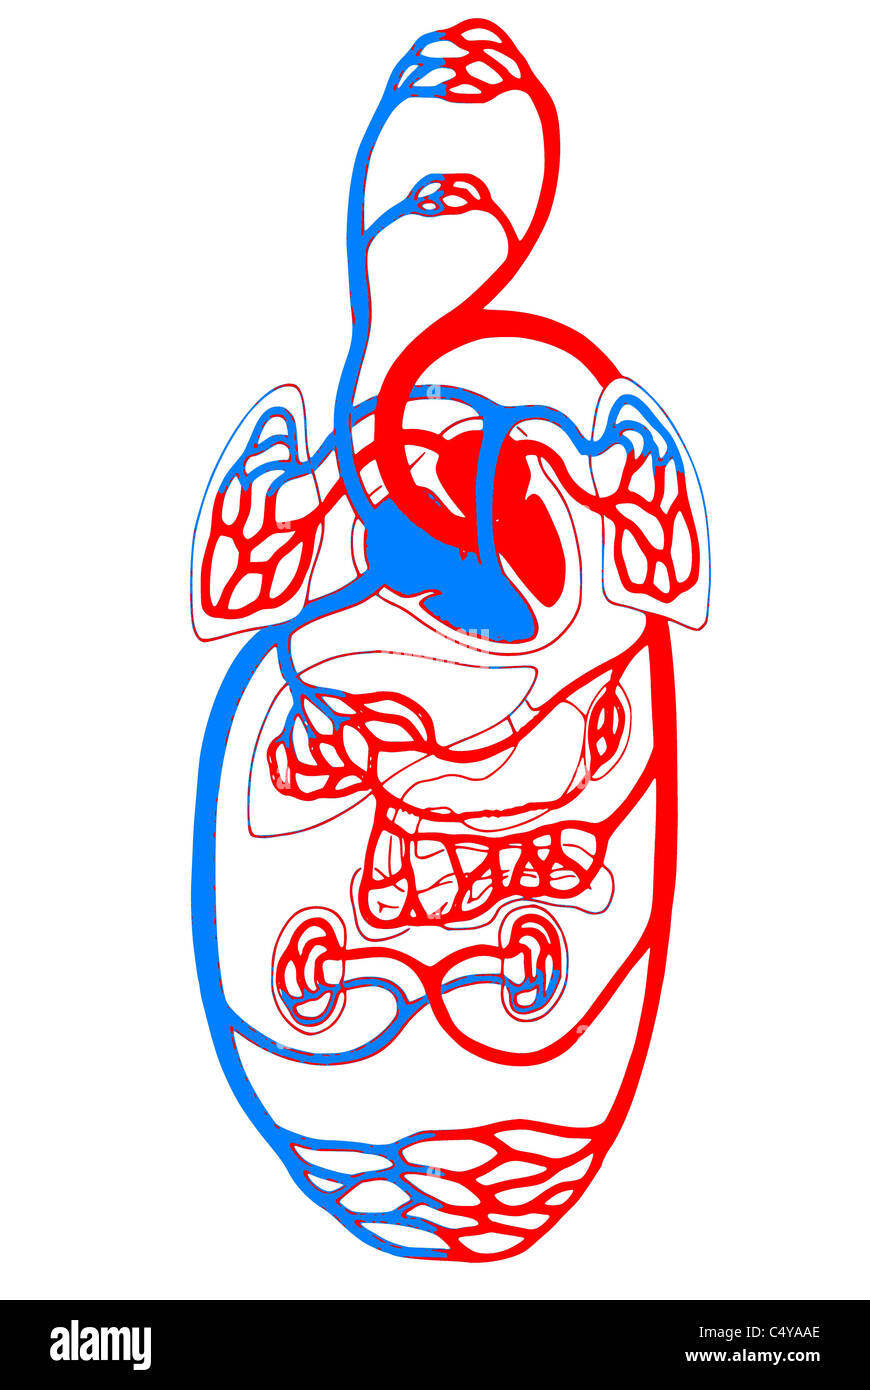 Cardiovascular System/ overview blue and red - Stock Image